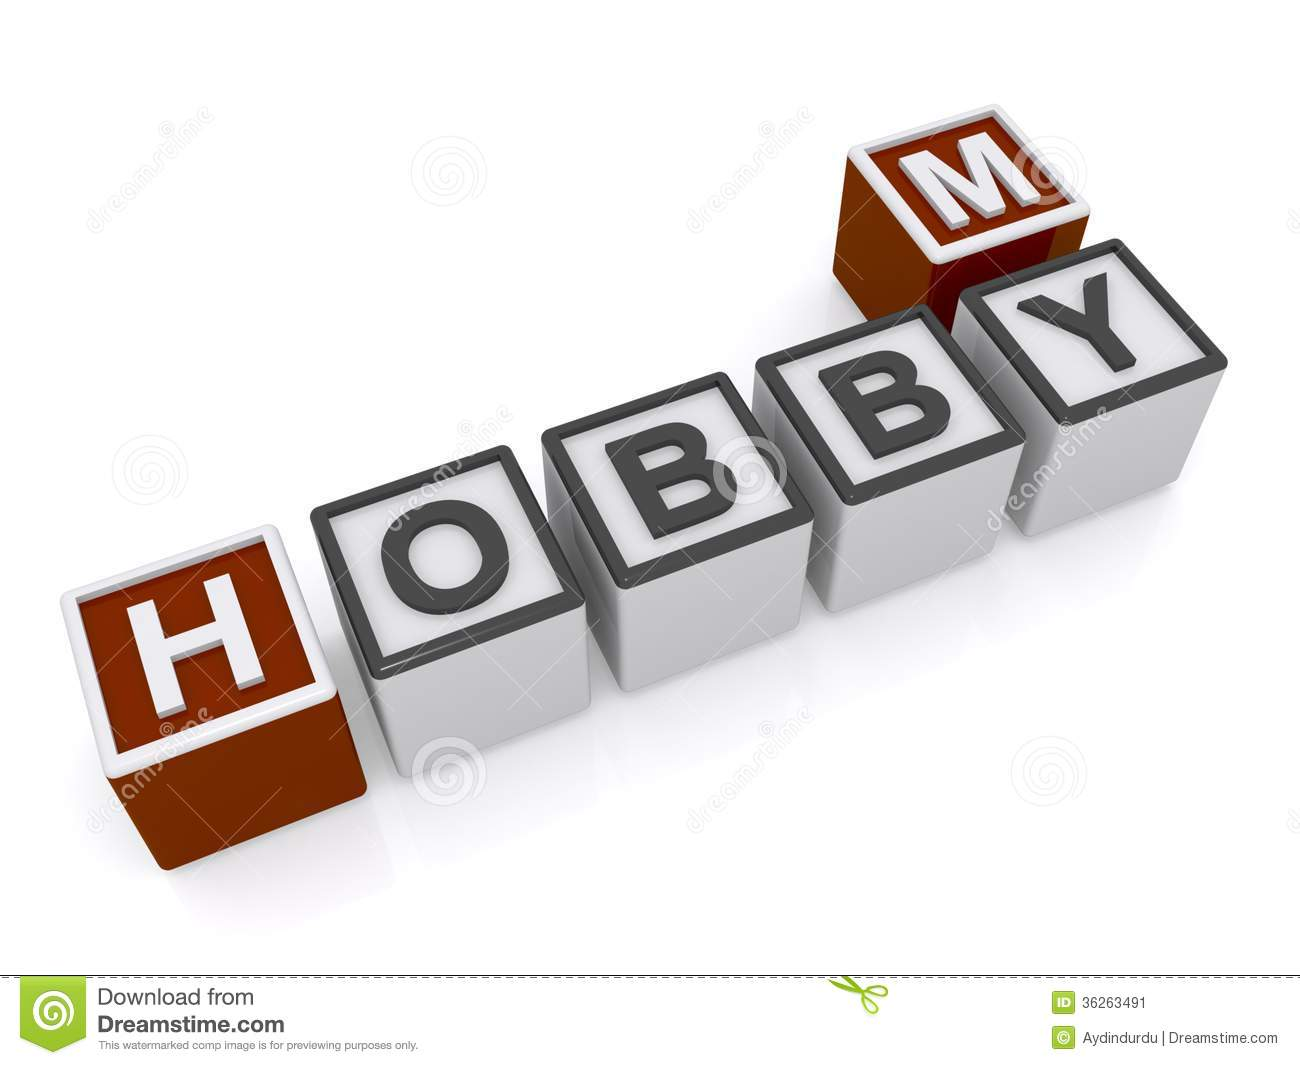 rc hobies with Stock Image My Hobby Sign Letter Blocks Crossword Puzzle Shape Spelling Words White Background Image36263491 on 32464657861 likewise 32344879334 also B6D KyleLayton NorCalHobbies2016091718 moreover 1293012409 moreover Watch.